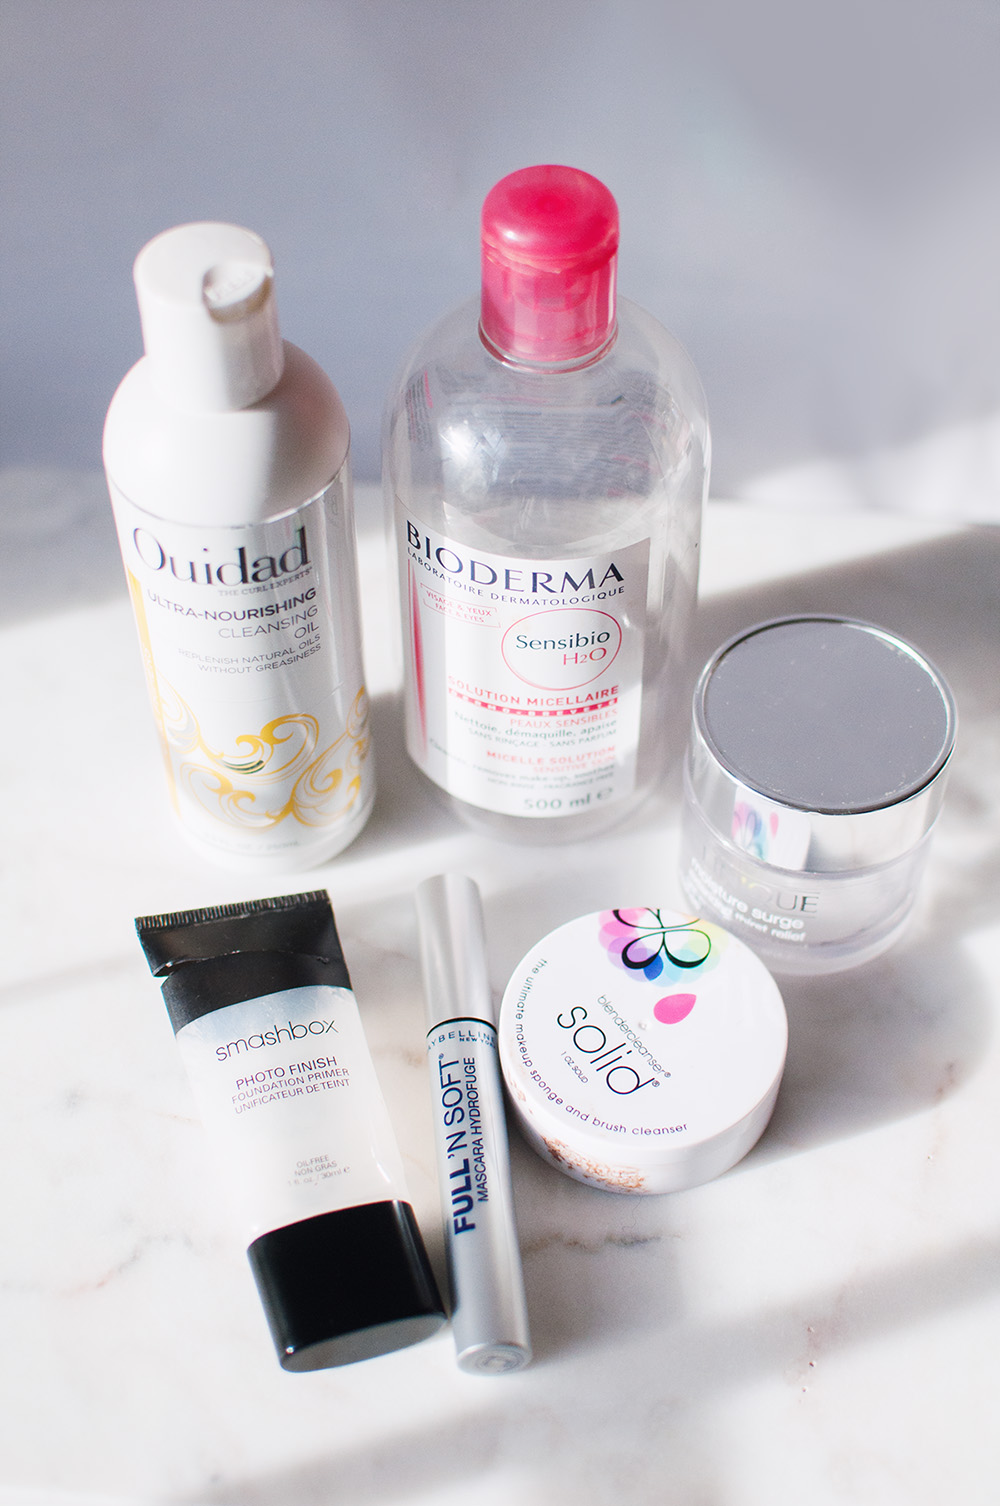 Bioderma sensibio review, ouidad ulta nourishing cleansing oil review, clinique moisture surge revew, beautyblender solid cleanser review, smashbox photo finish primer review, empties, beauty empties review